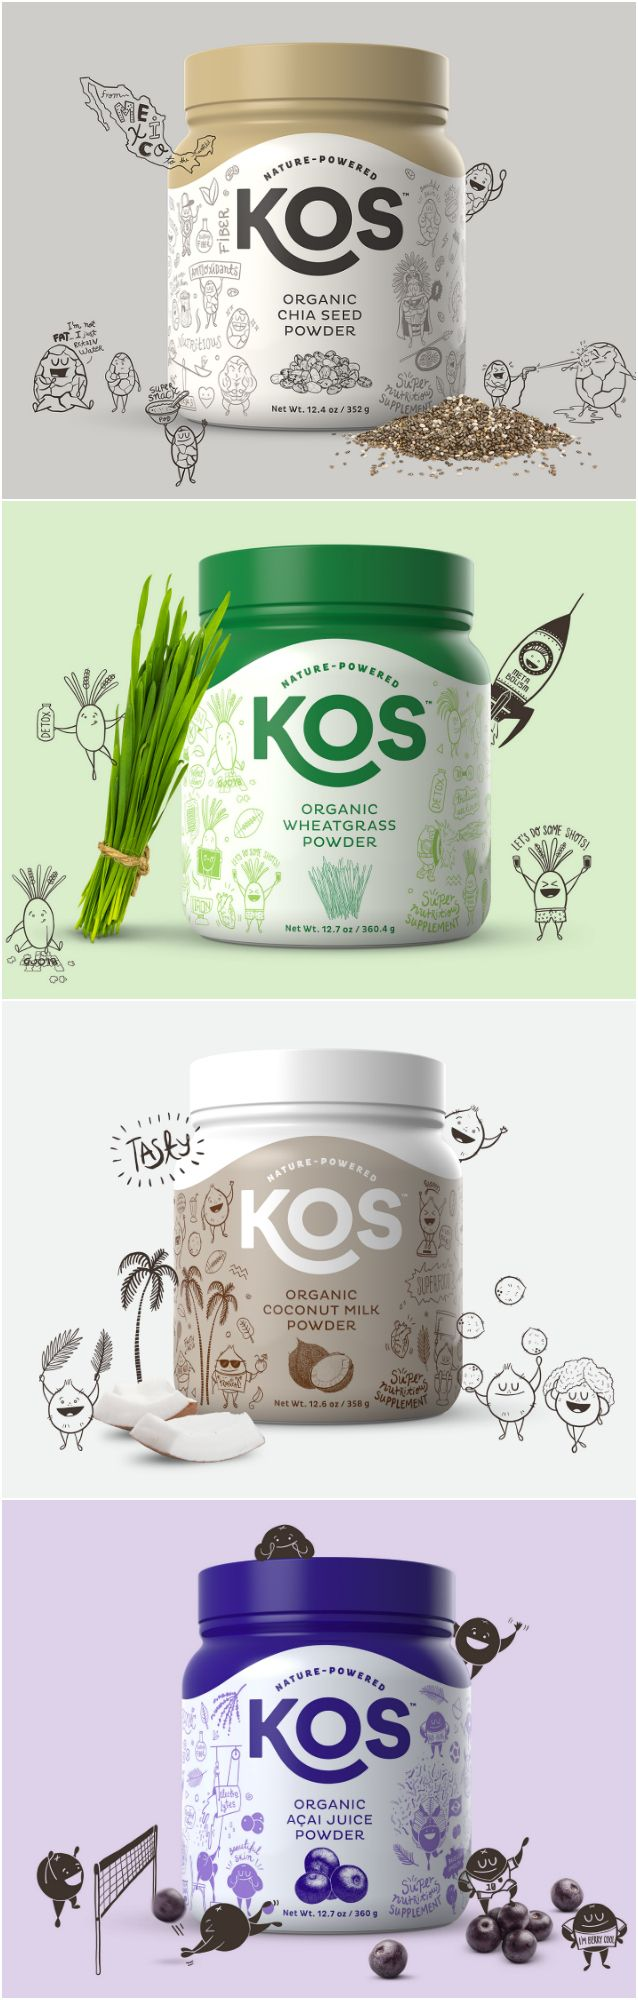 Brand and Packaging Design for a Family of Organic Plant-Based Products